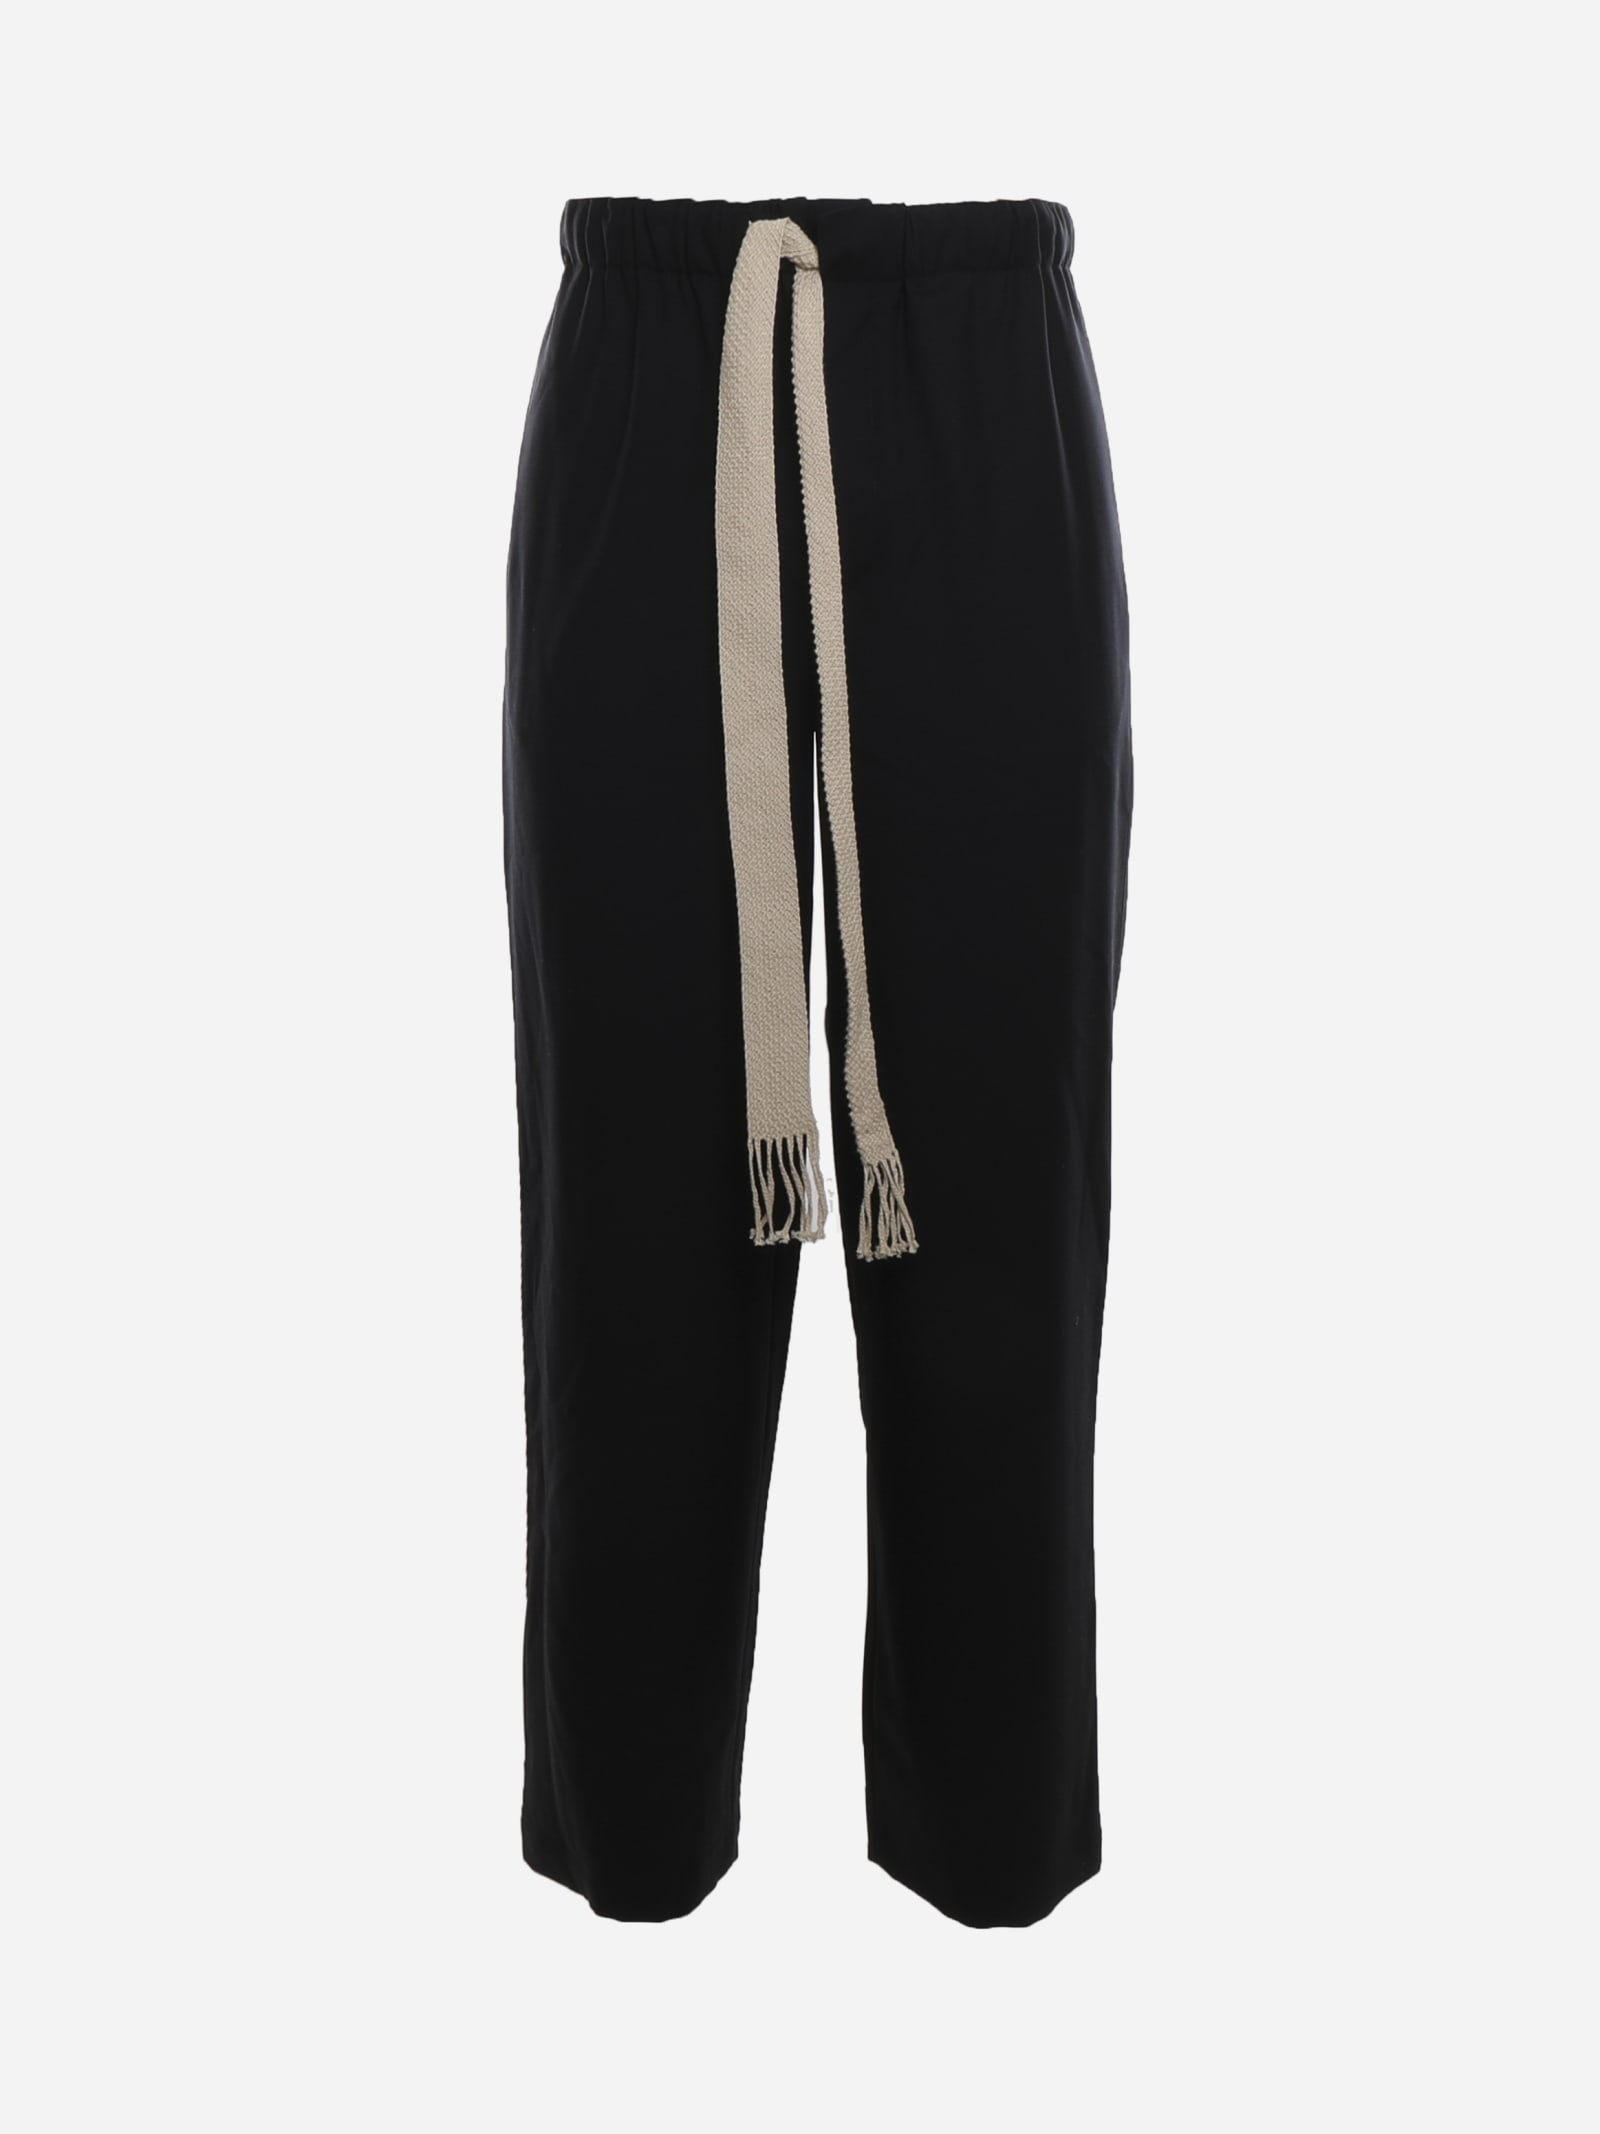 Loewe WOOL TWILL TROUSERS WITH EMBROIDERED ANAGRAM